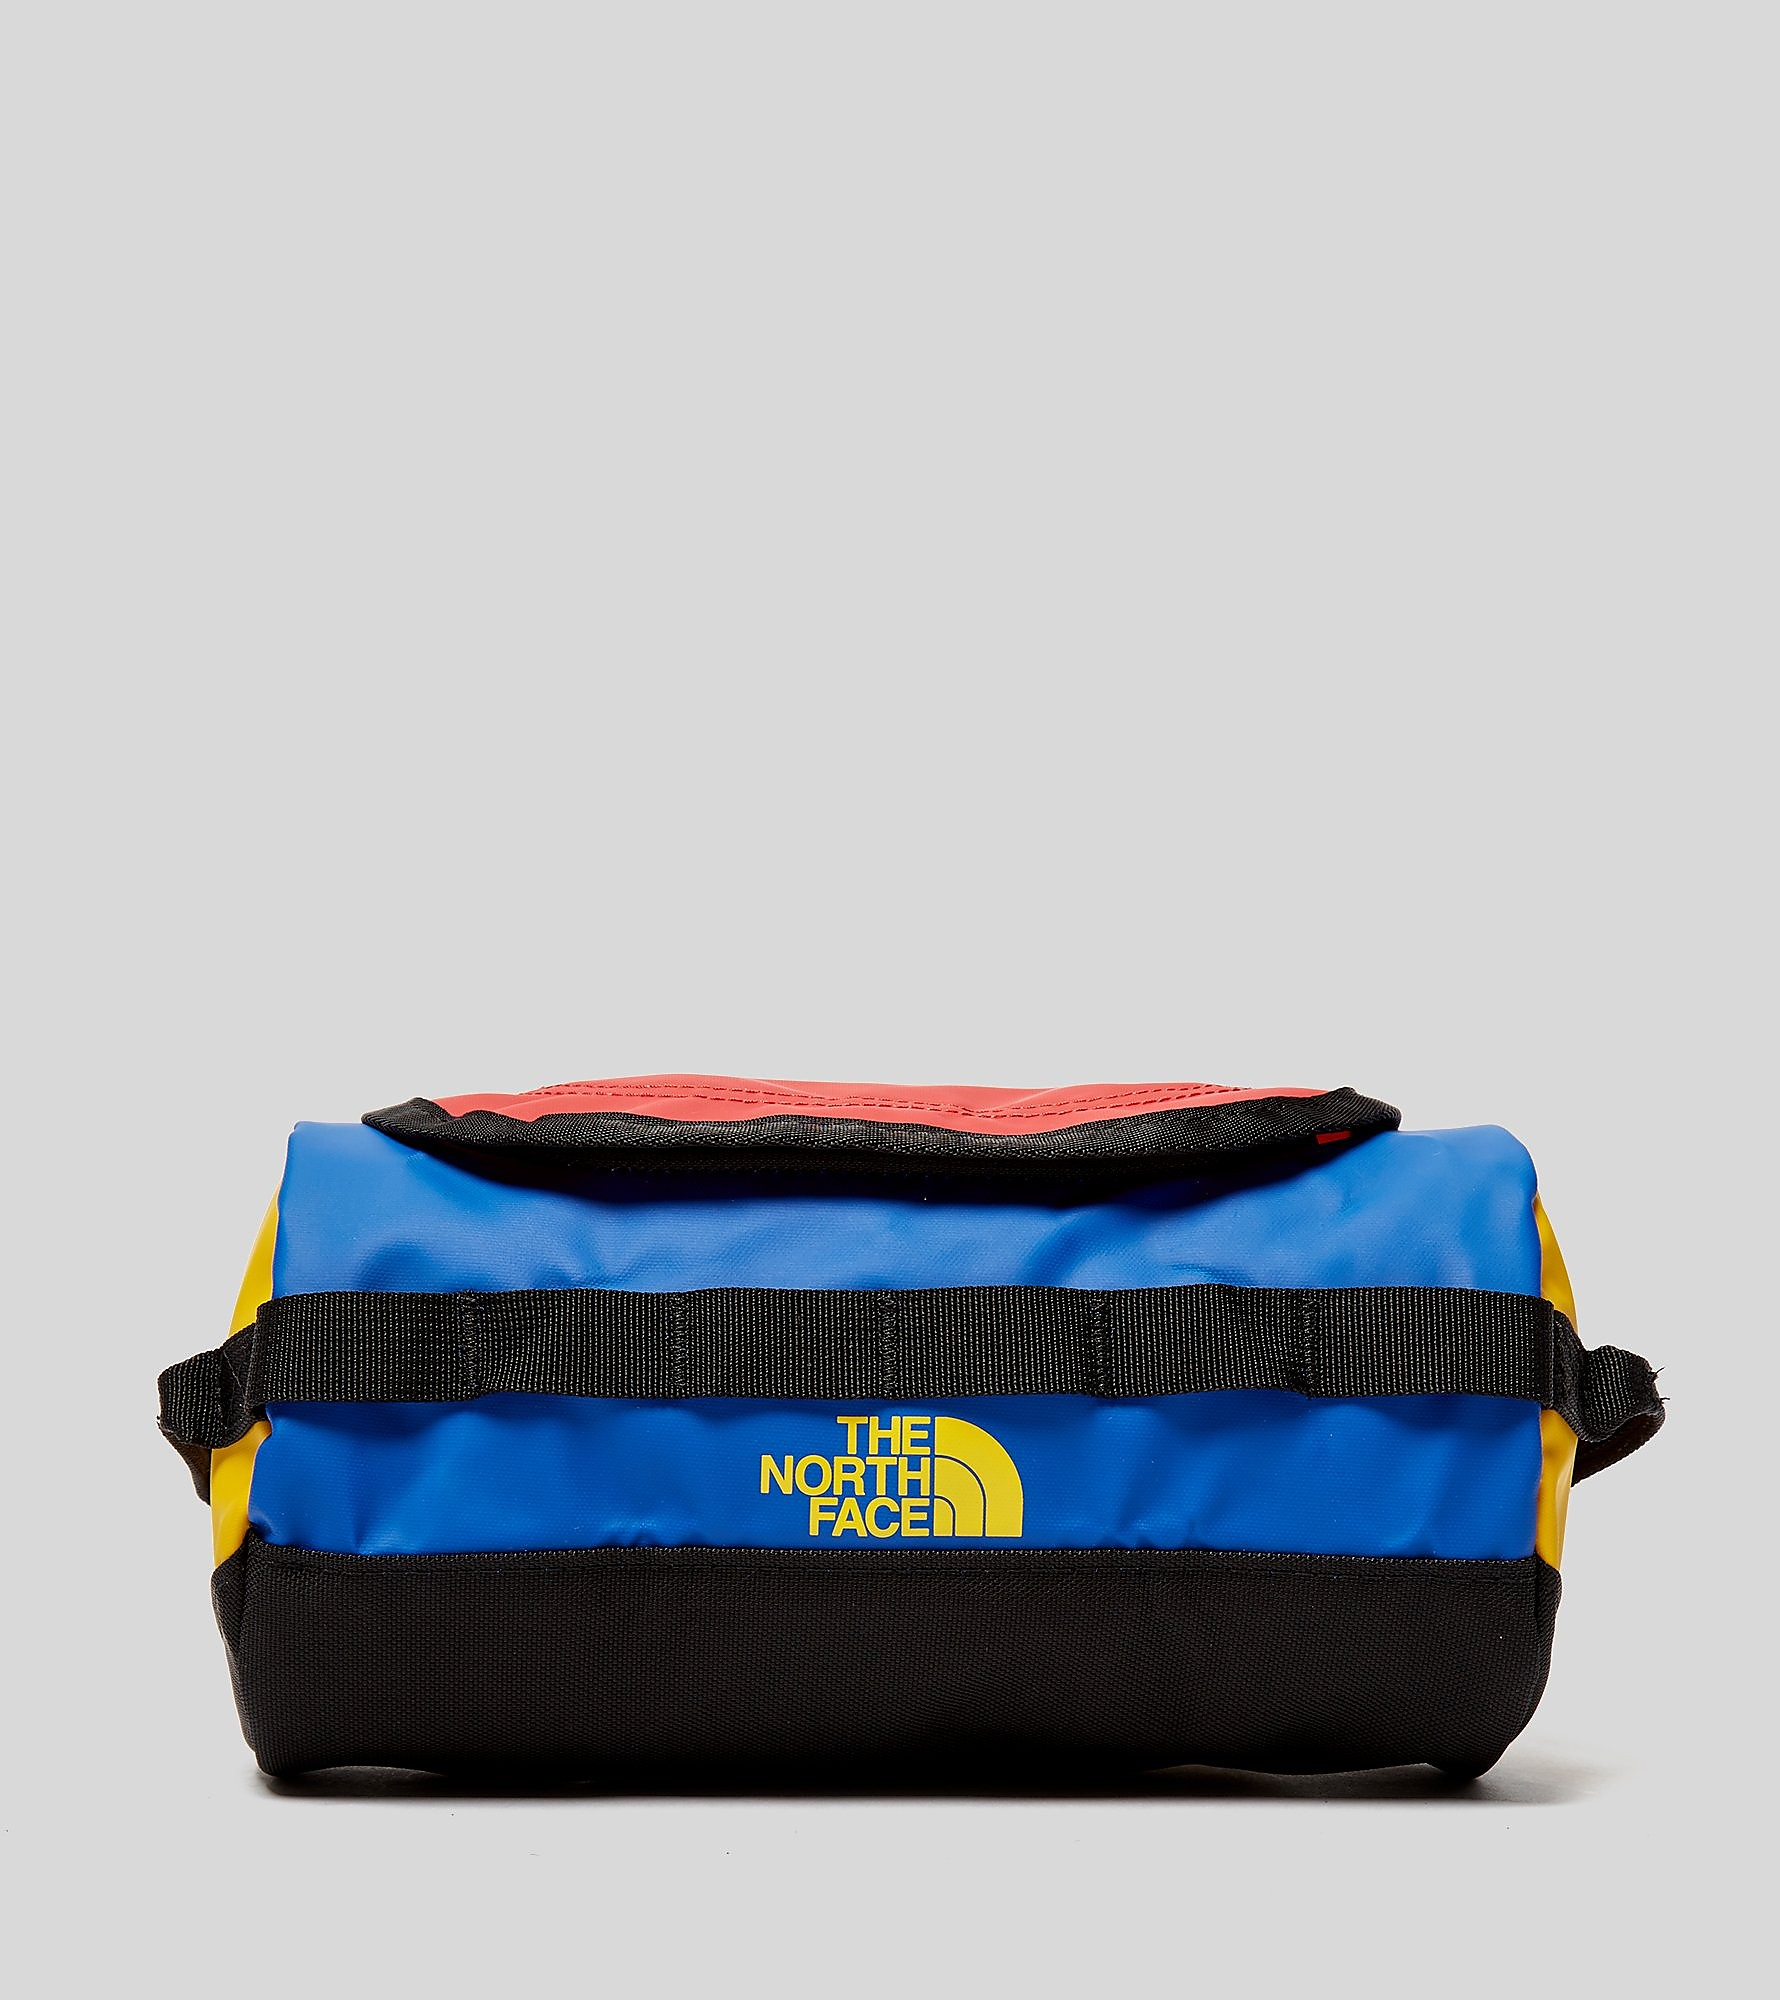 The North Face TNF Canister Bag